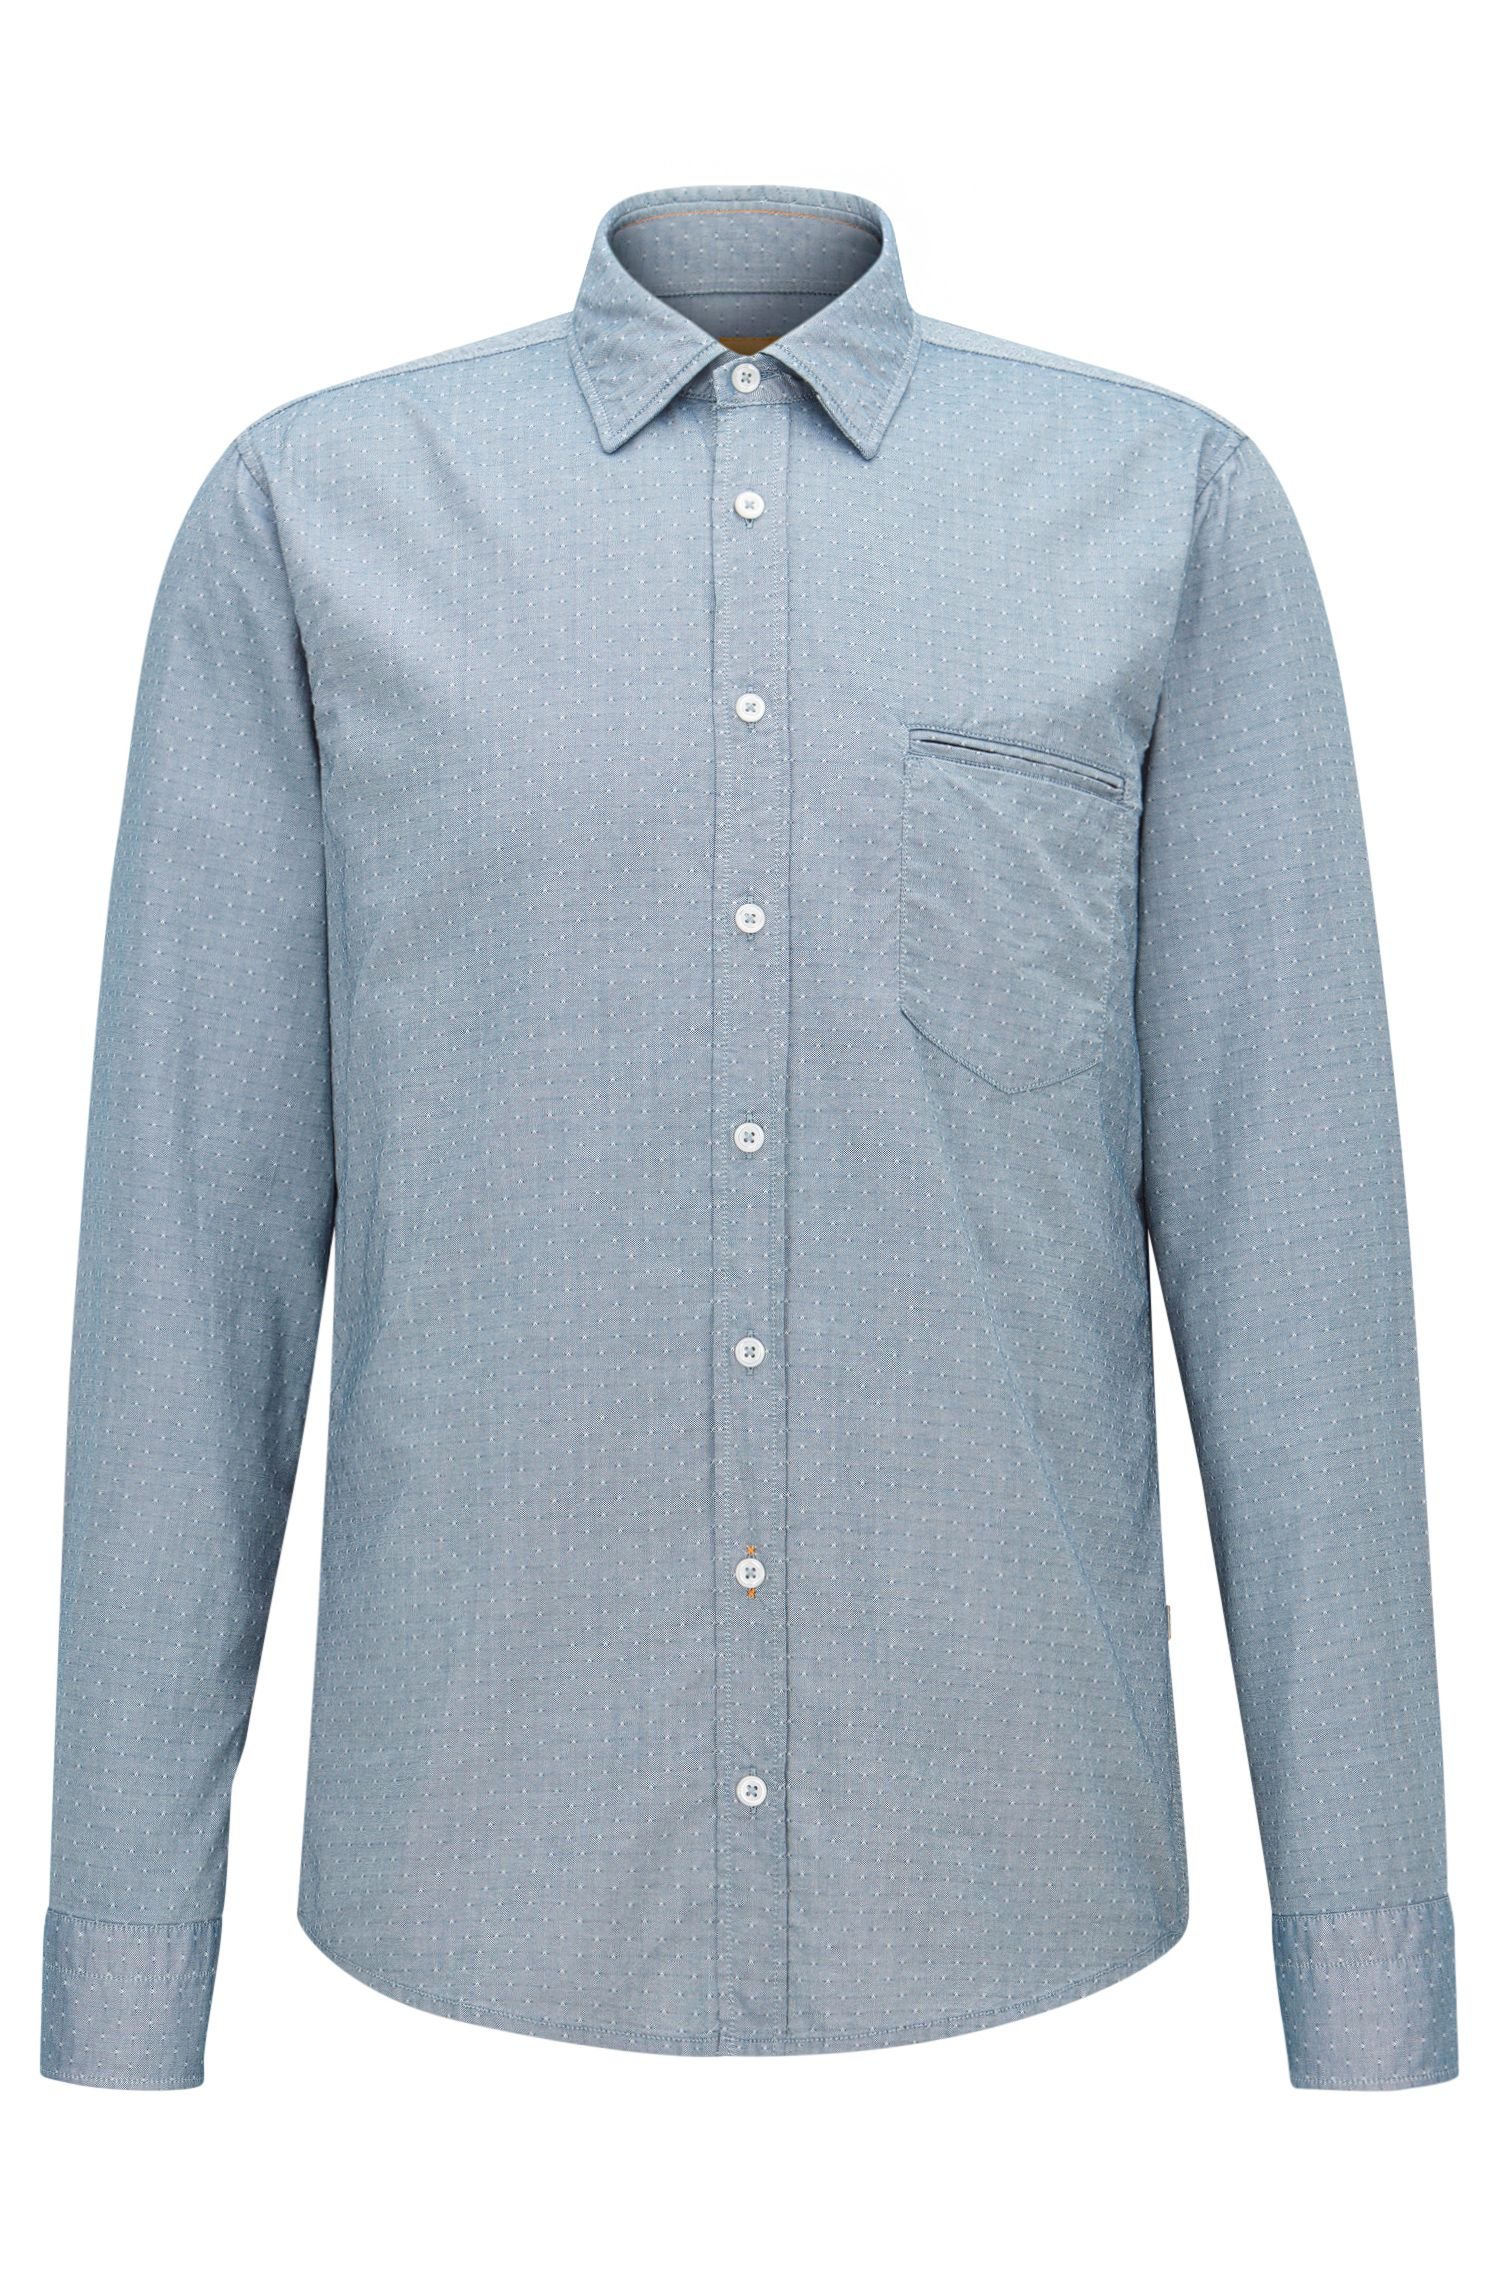 Cotton Button Down Shirt, Regular Fit | Classy